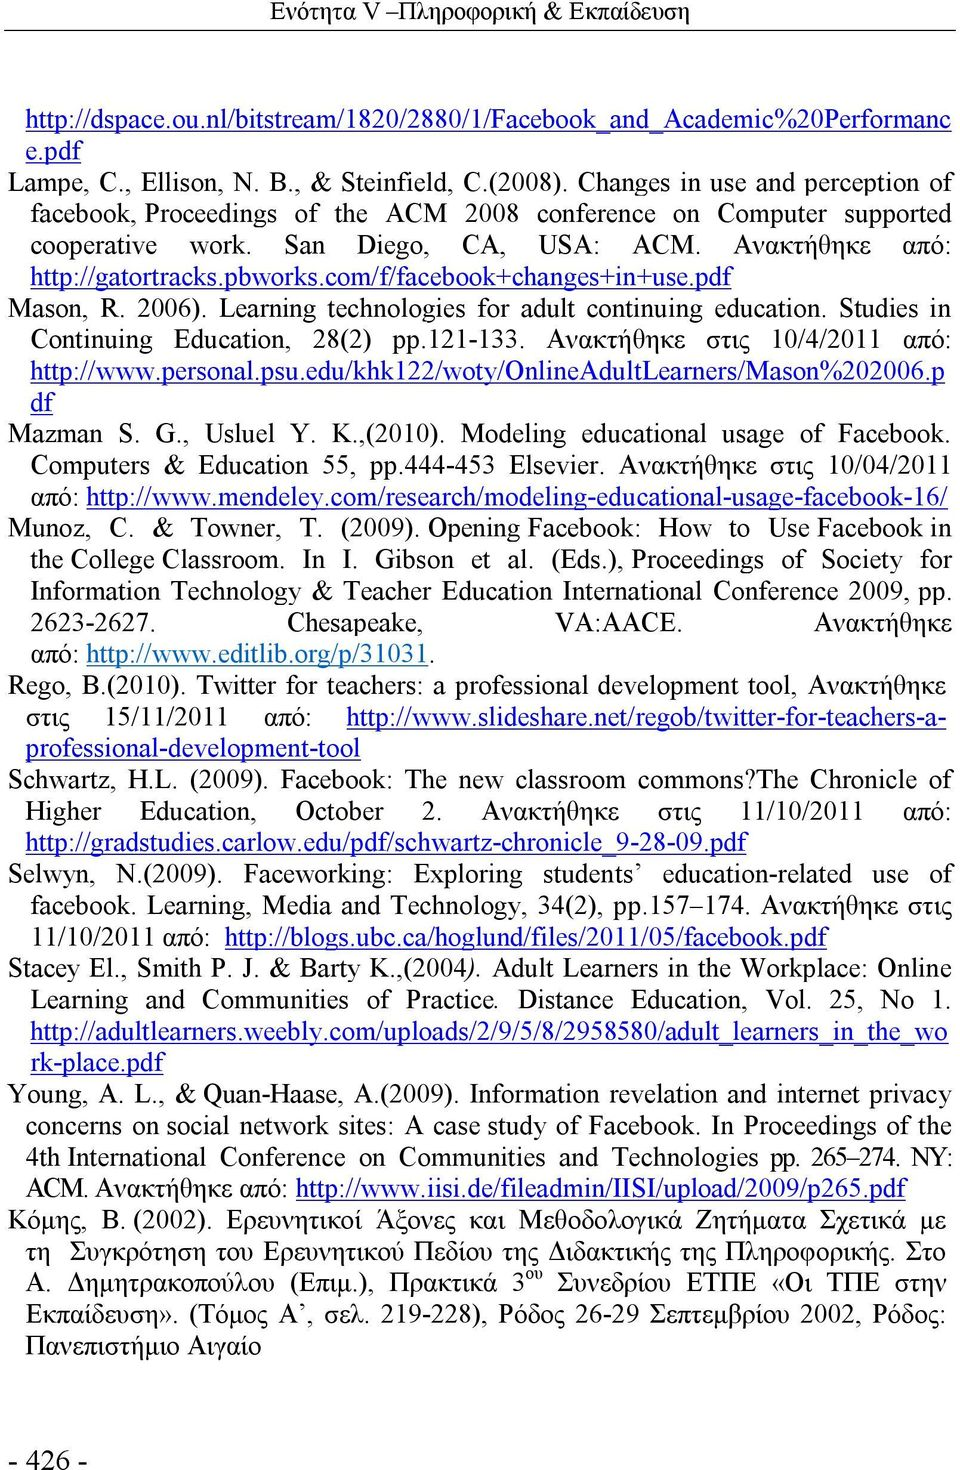 com/f/facebook+changes+in+use.pdf Mason, R. 2006). Learning technologies for adult continuing education. Studies in Continuing Education, 28(2) pp.121-133. Ανακτήθηκε στις 10/4/2011 από: http://www.